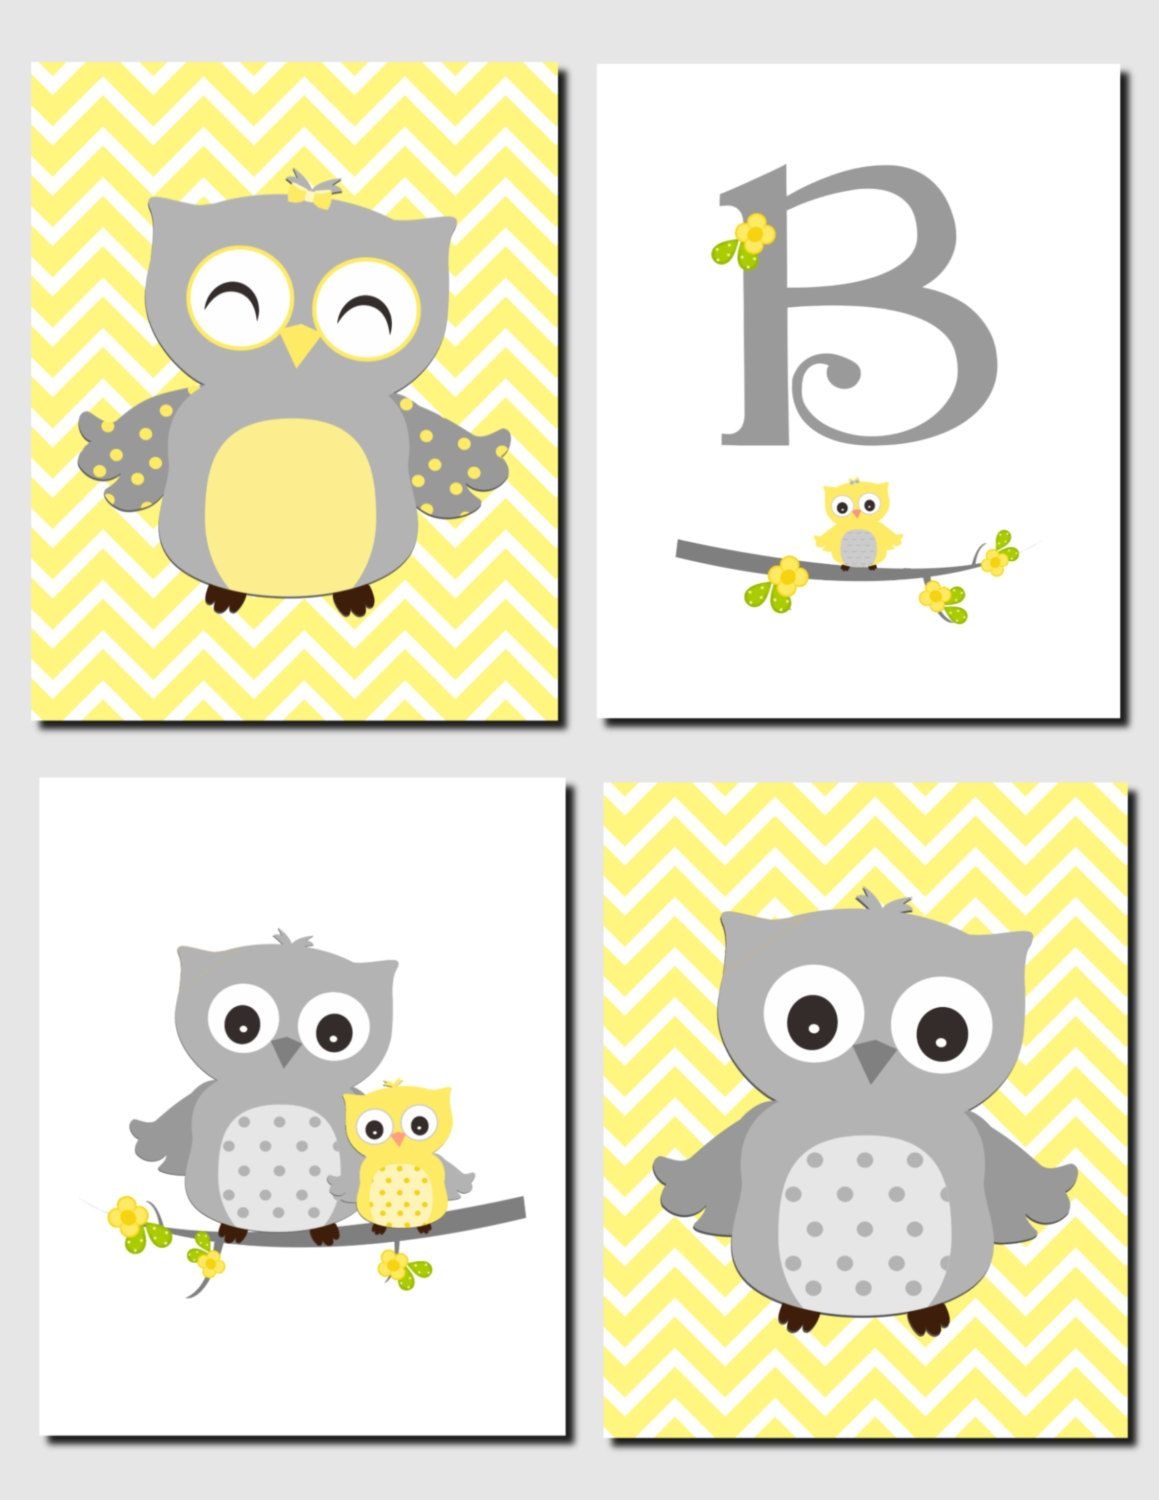 Yellow Gray Nursery Owl Decor Initial Monogram Baby Kids Art Chevron S Room